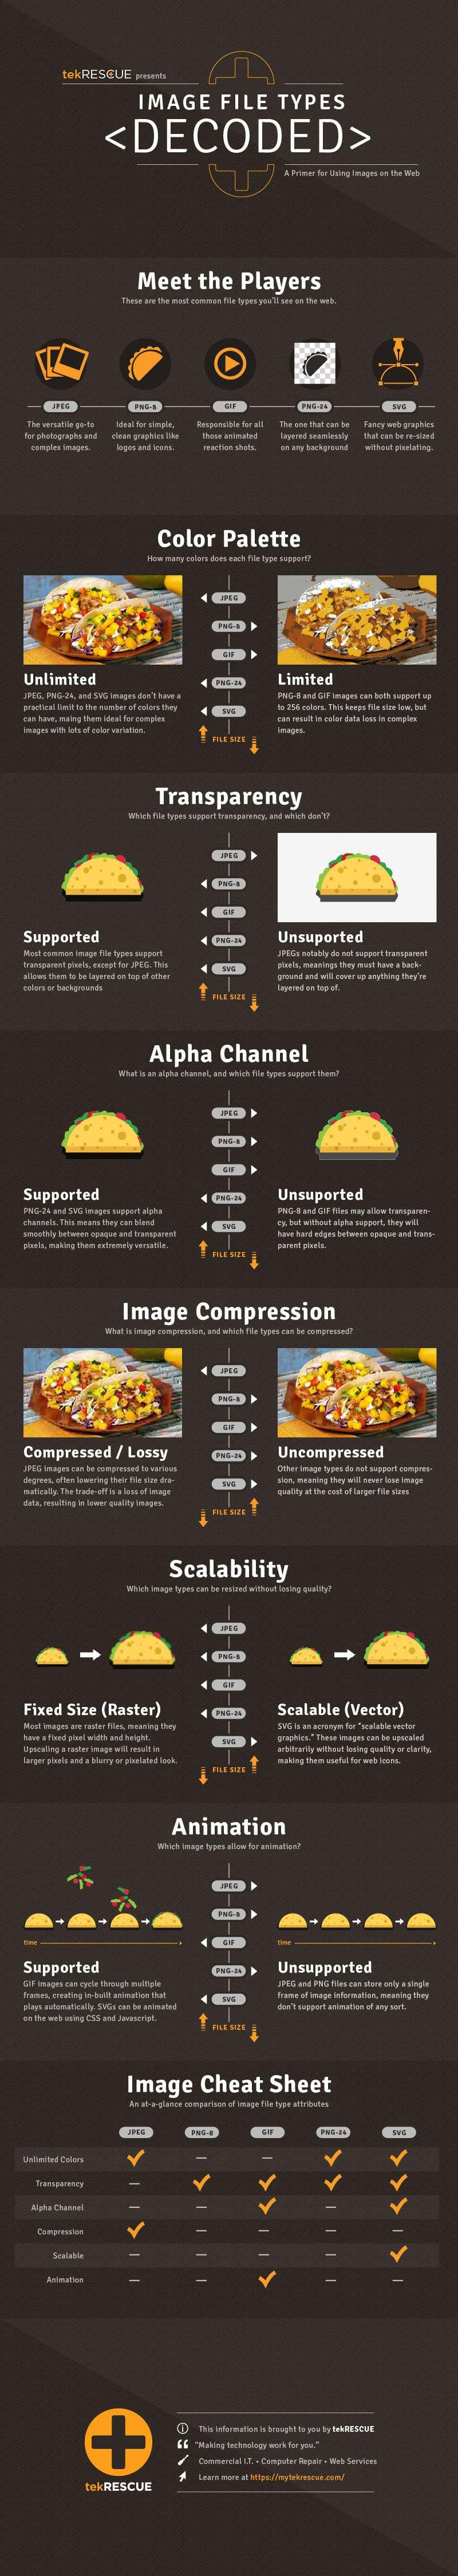 Image File Types Decoded infographic